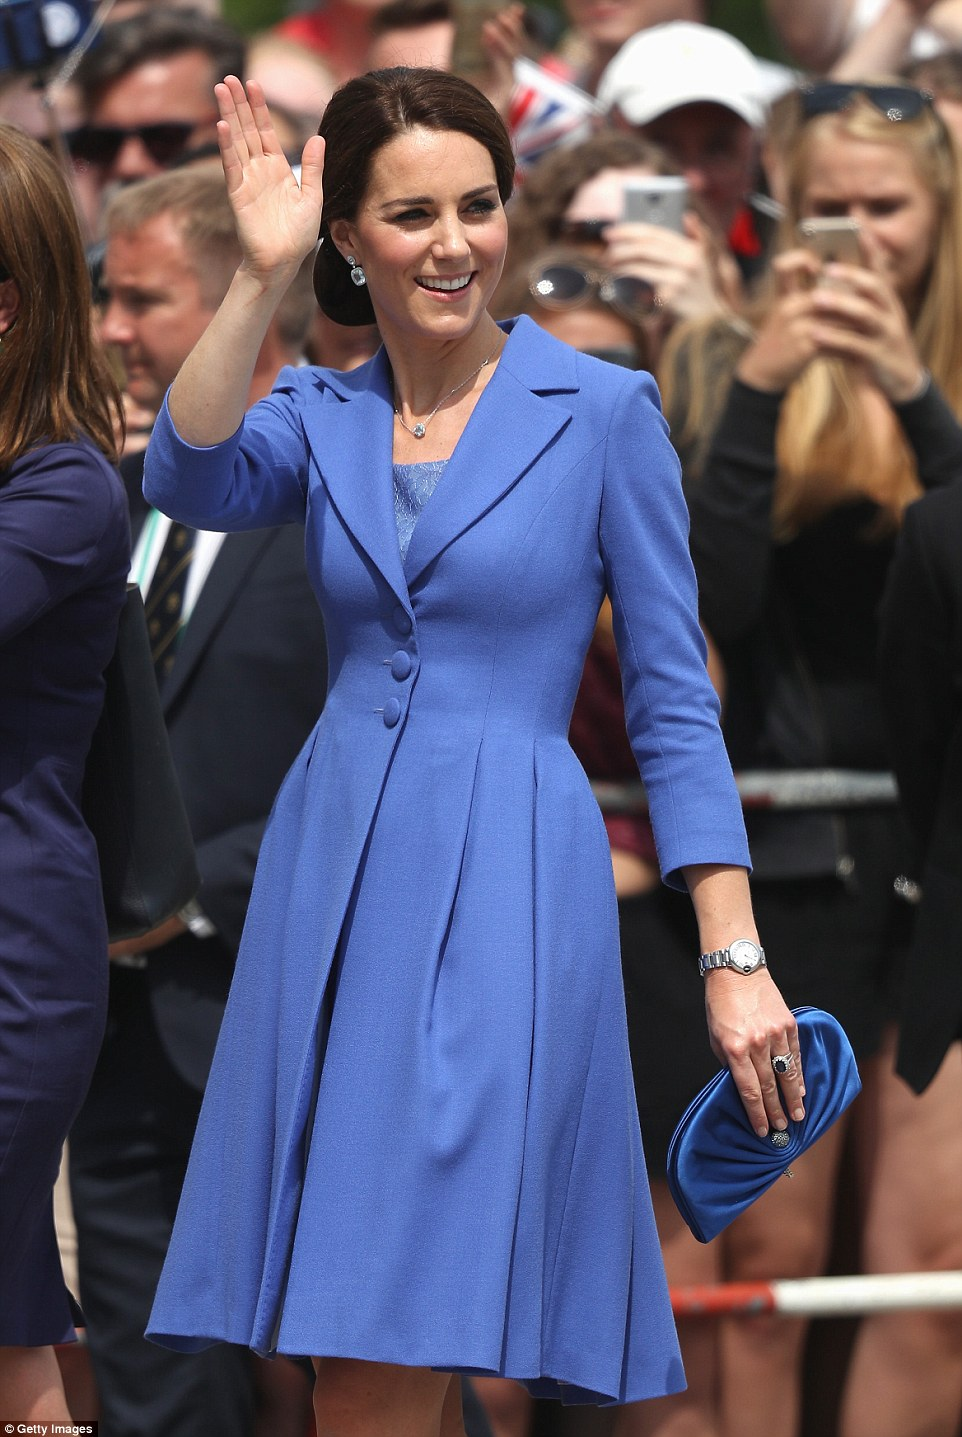 The Duchess of Cambridge was impeccably co-ordinated, carrying a small ruched blue clutch bag to match her outfit